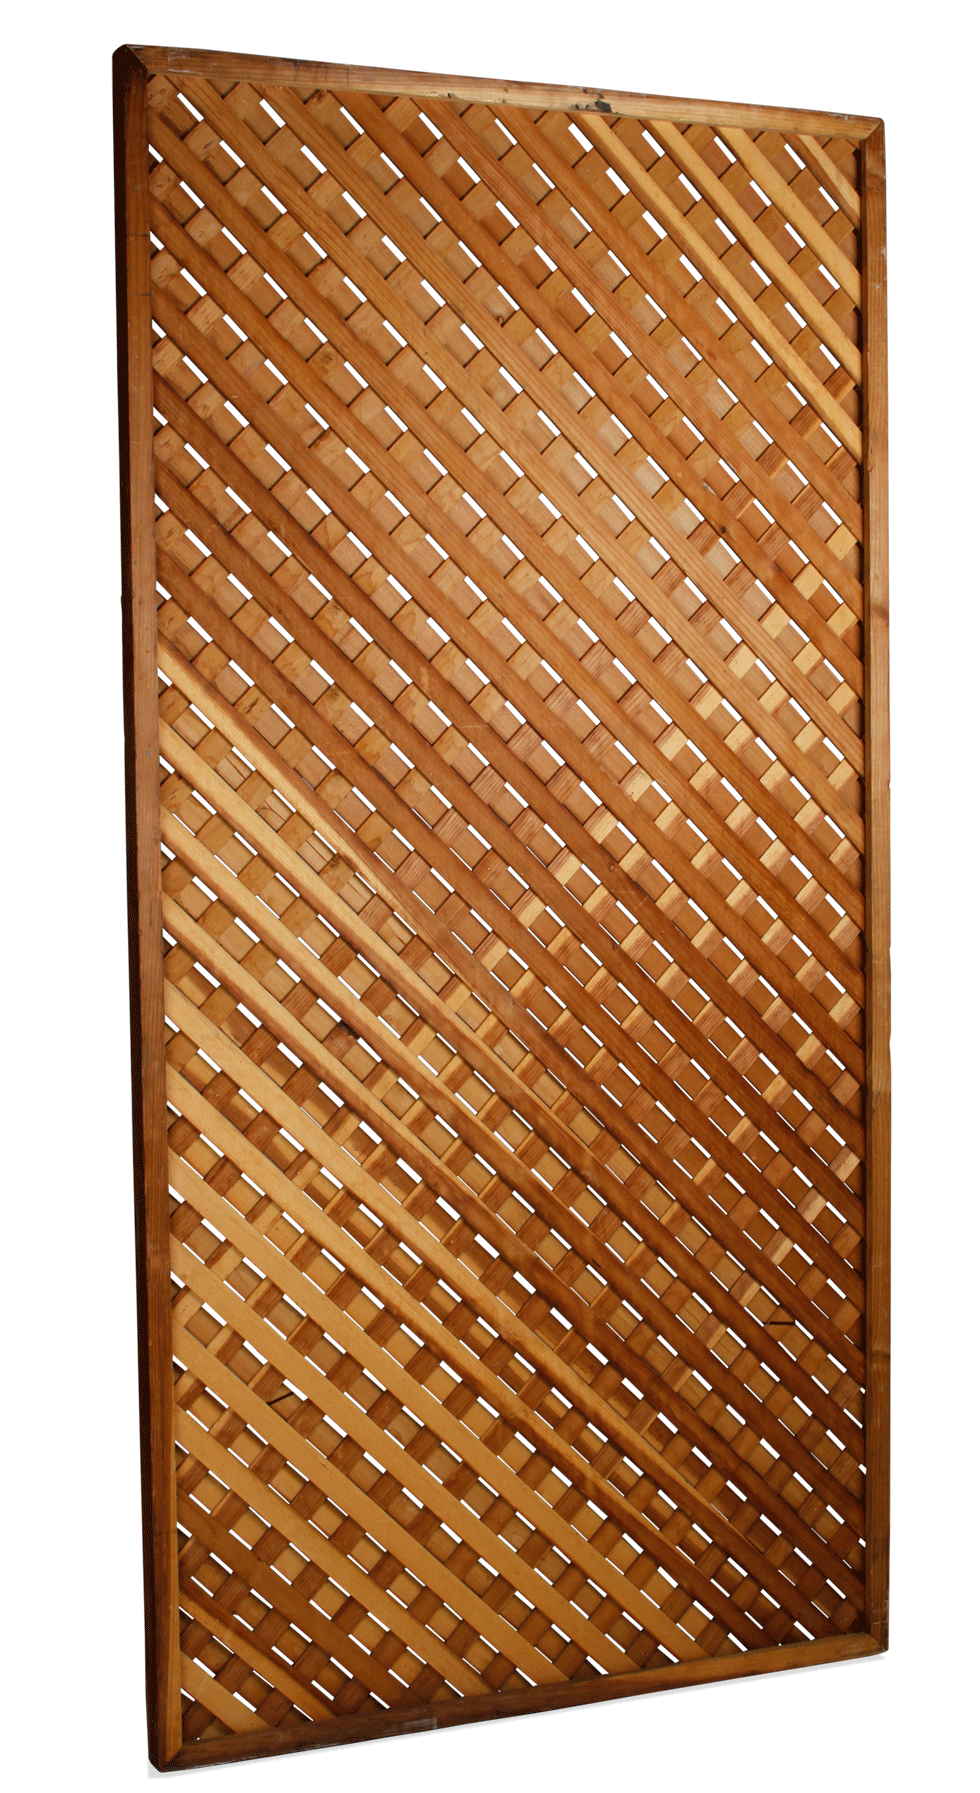 Redwood Lattice Screen 4 X 8 High Rentals Bright Rentals